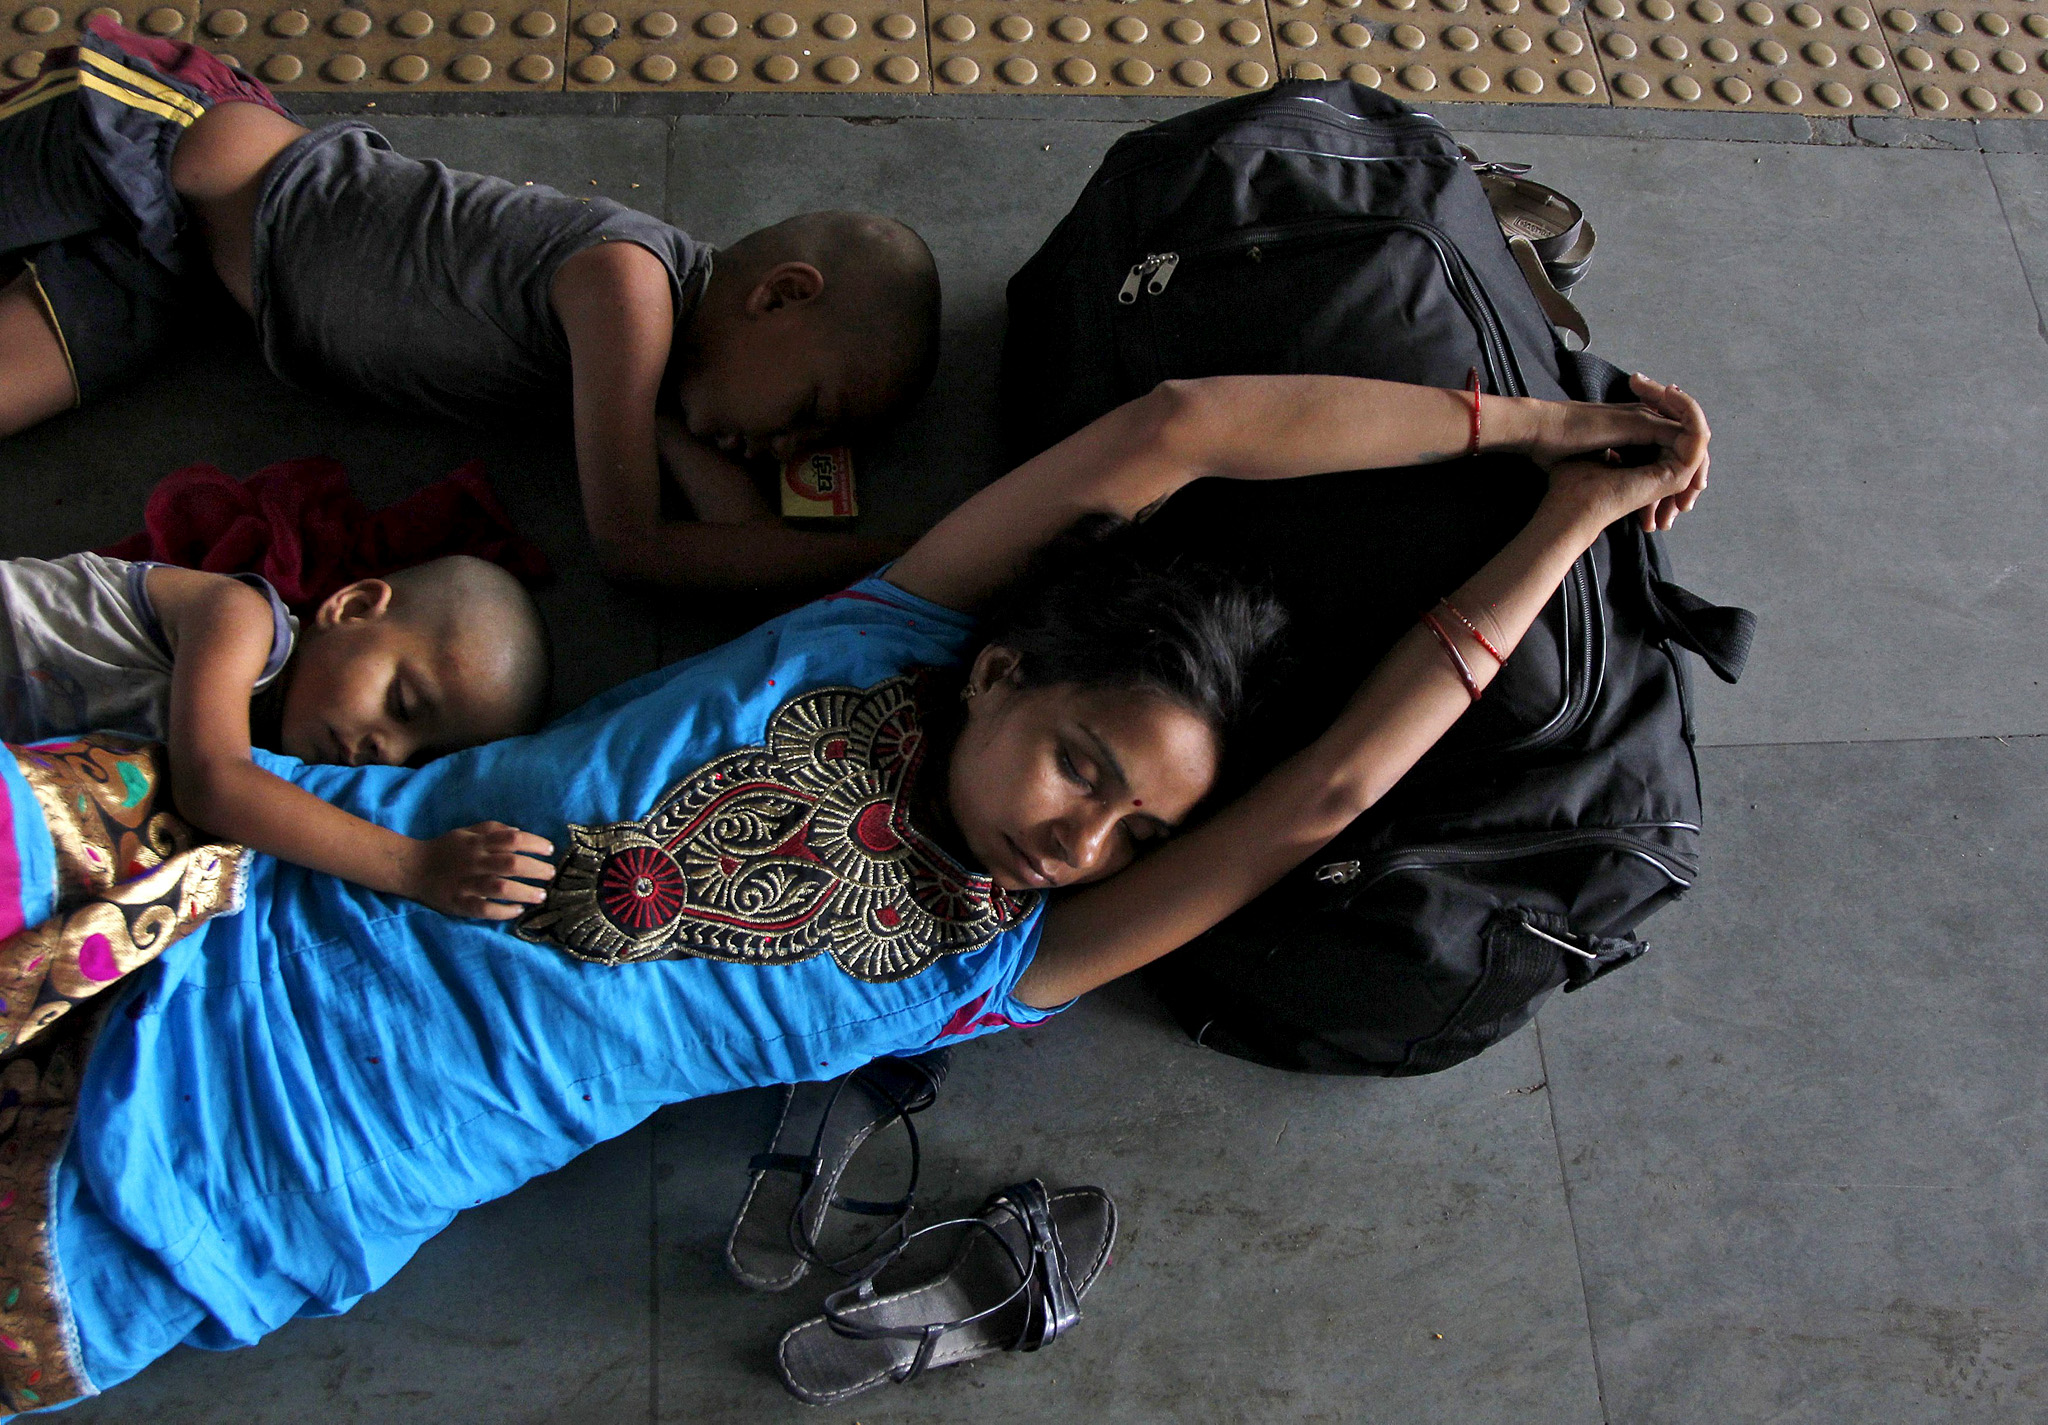 A passenger sleeps along with her children at a railway station on a hot summer day in Allahabad...A passenger sleeps along with her children at a railway station on a hot summer day in Allahabad, India, May 26, 2015. Temperature in Allahabad on Tuesday is expected to reach 46.4 degree Celsius (115.5 degree Fahrenheit), according to India's metrological department website. REUTERS/Jitendra Prakash      TPX IMAGES OF THE DAY